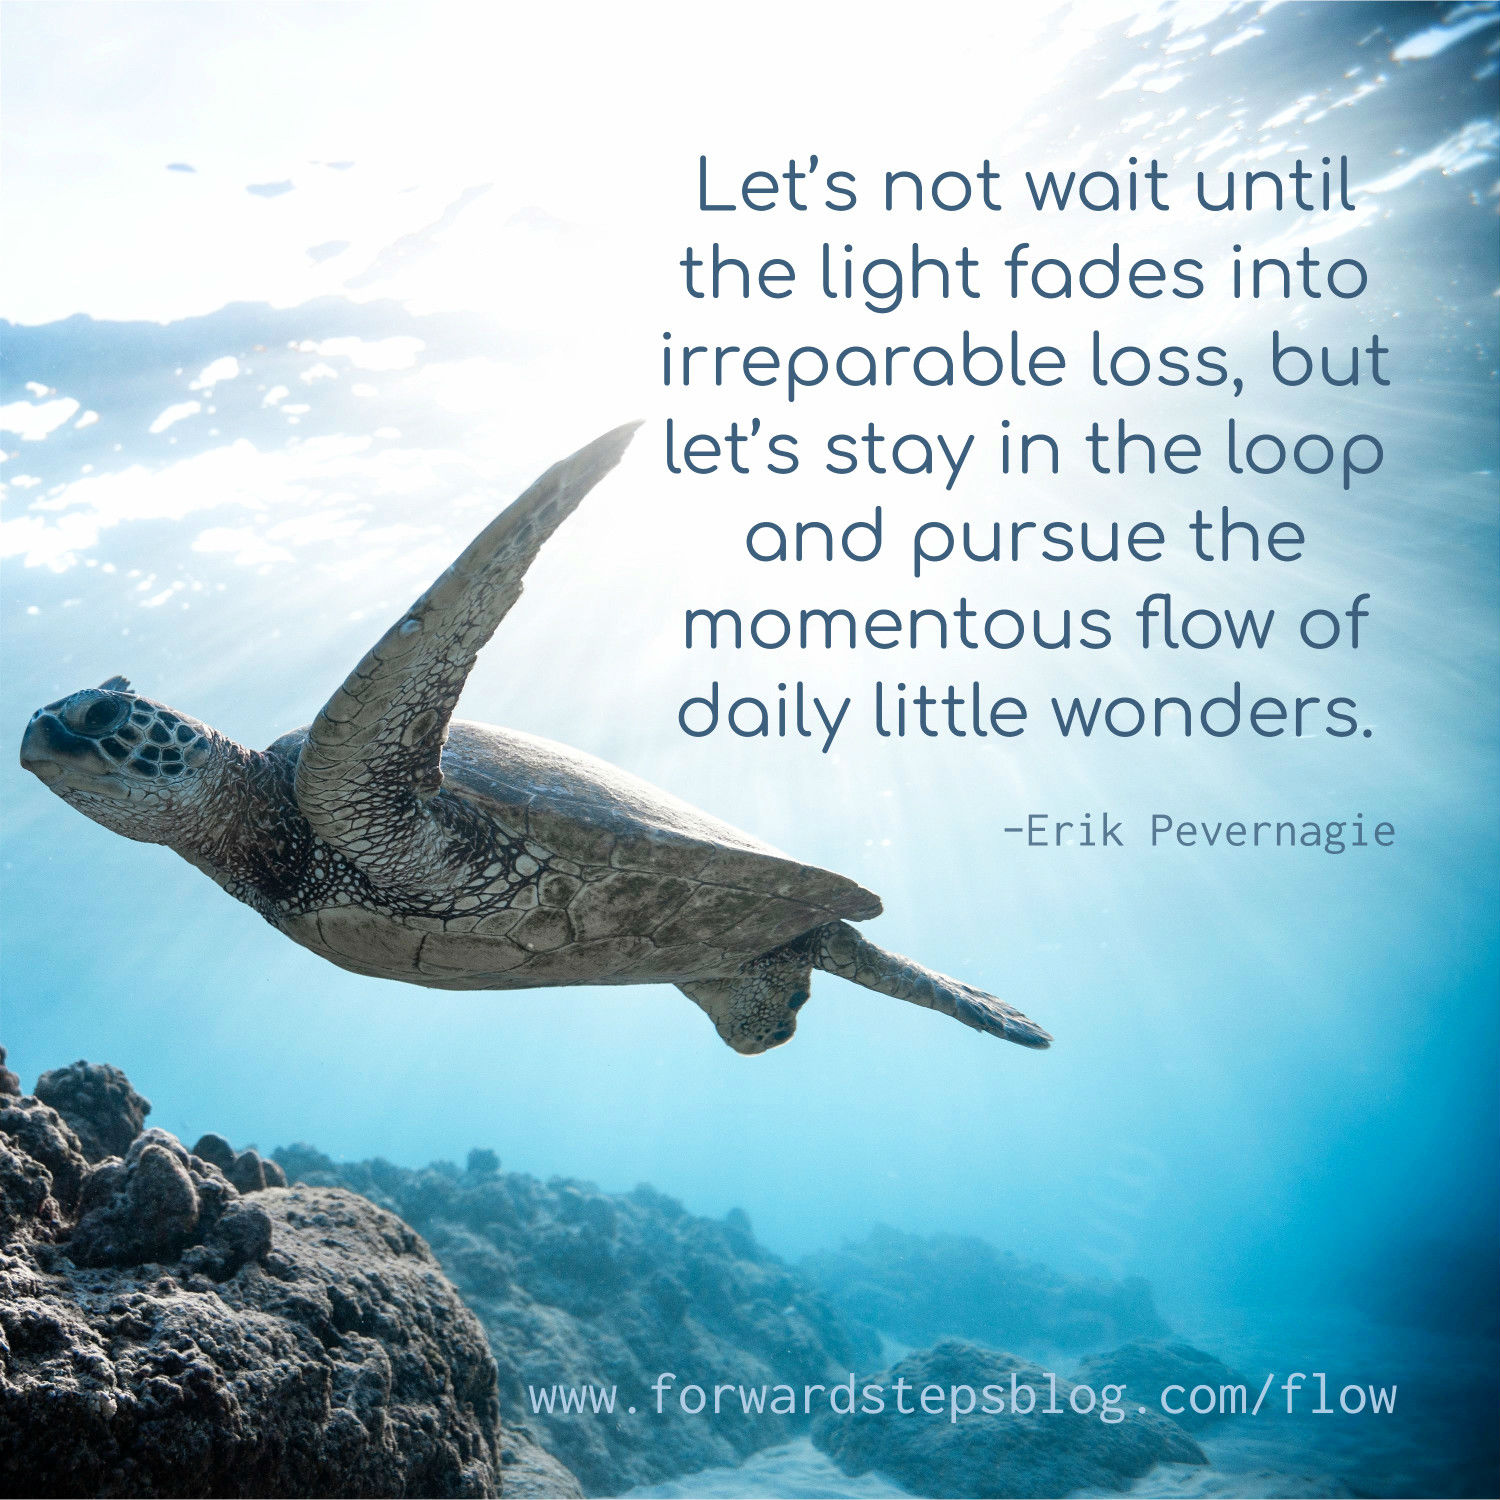 Flow of daily little wonders - Forward Steps image_9